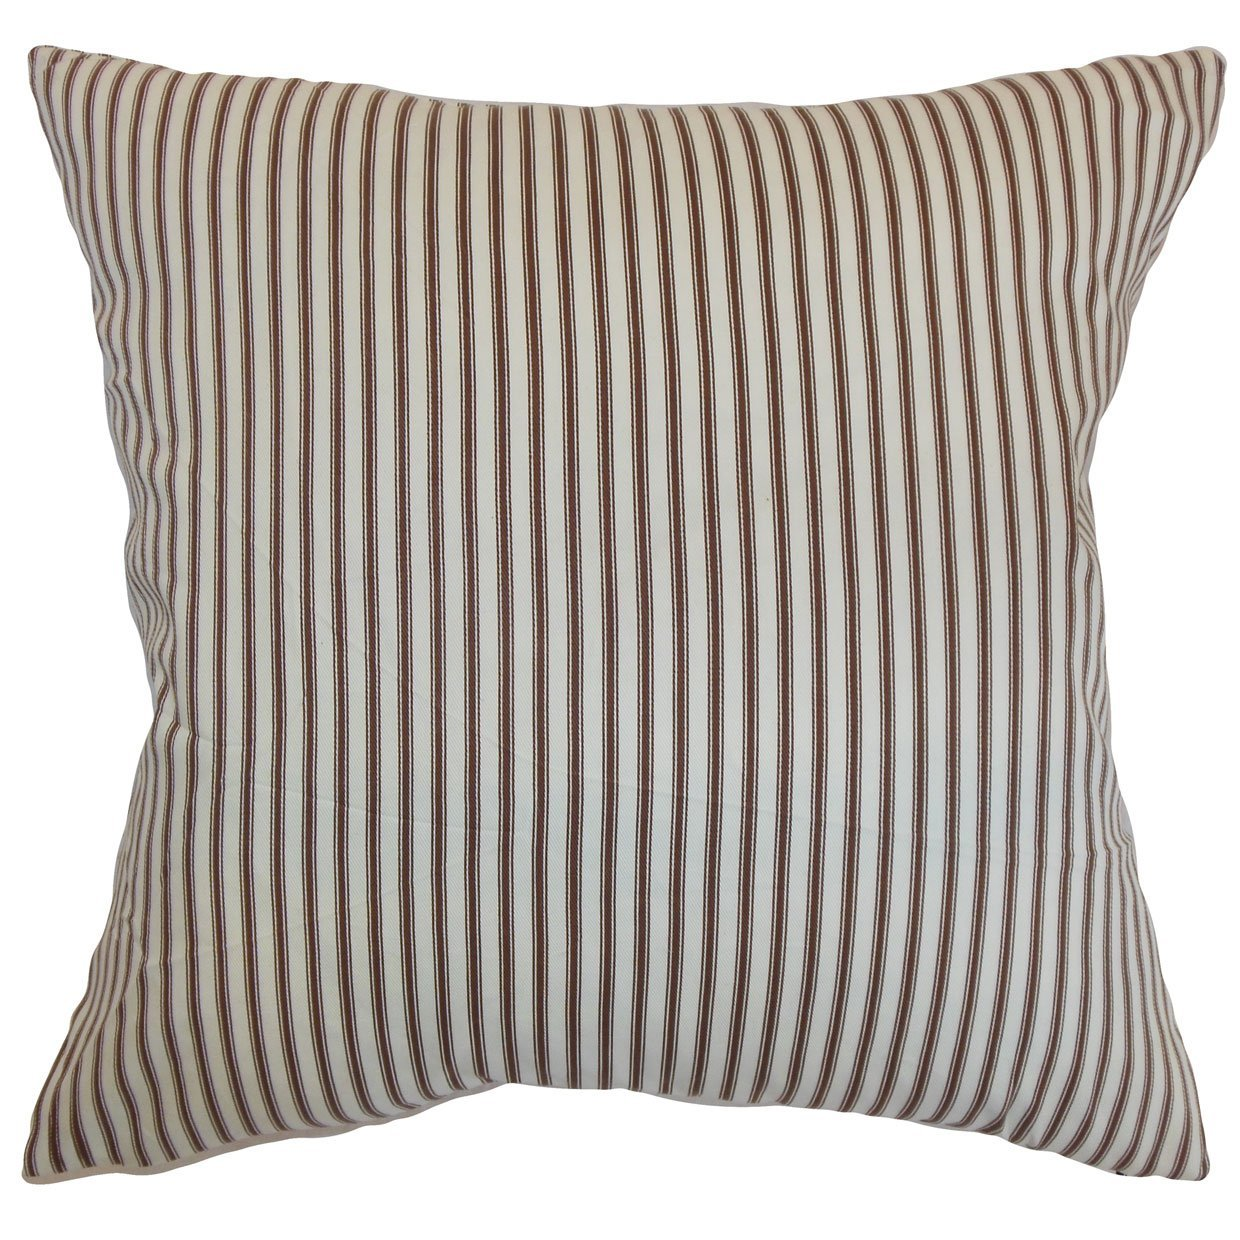 The Pillow Collection Daxiam Stripes Bedding Sham Brown White King//20 x 36